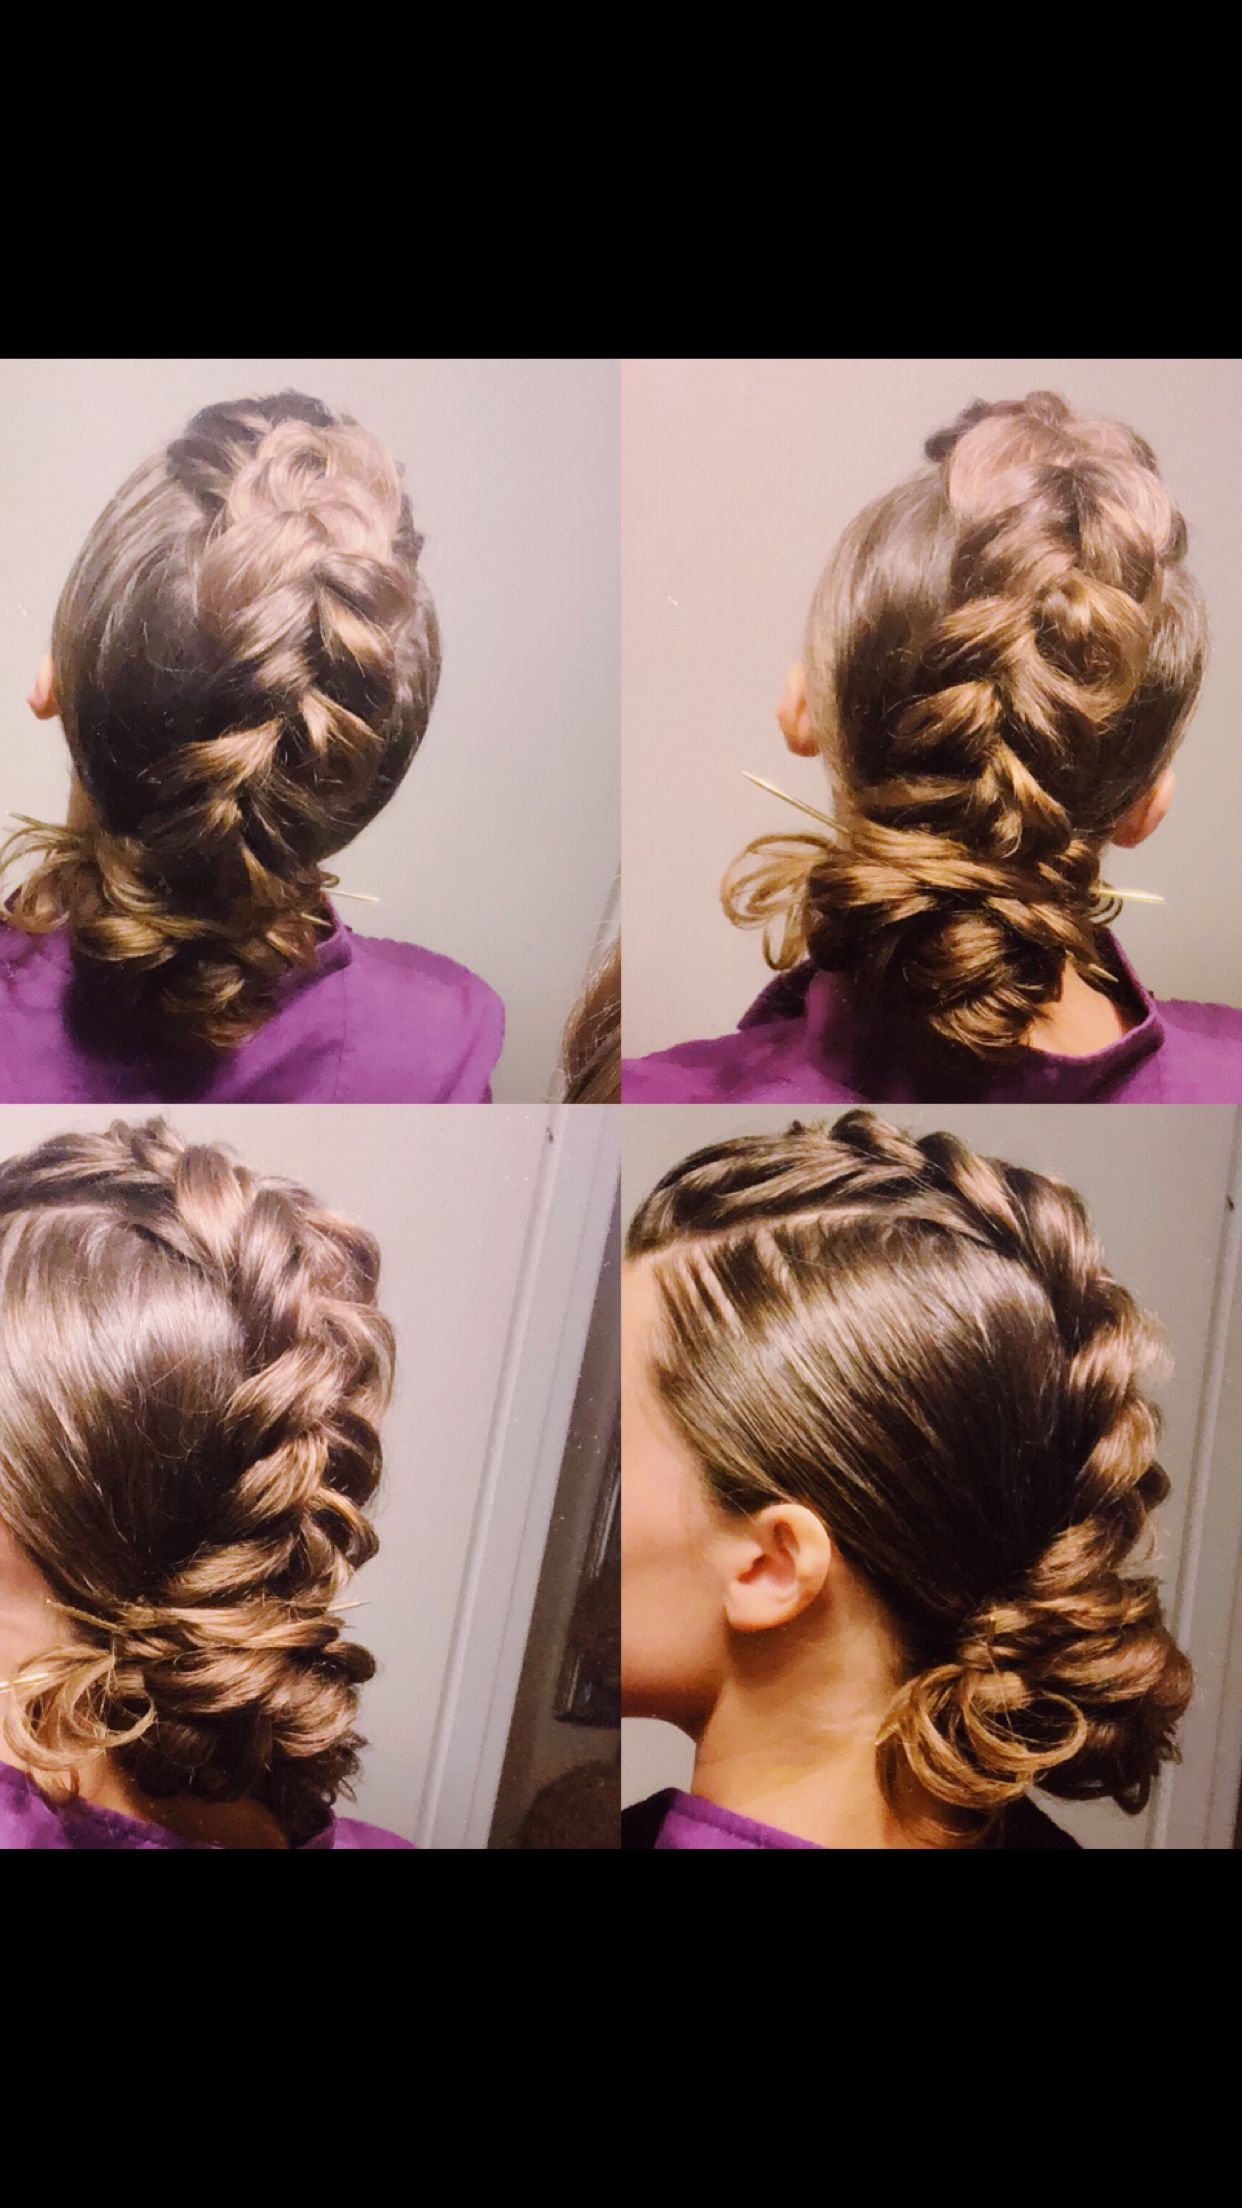 Dutch braid mohawk updo different kind of braids in